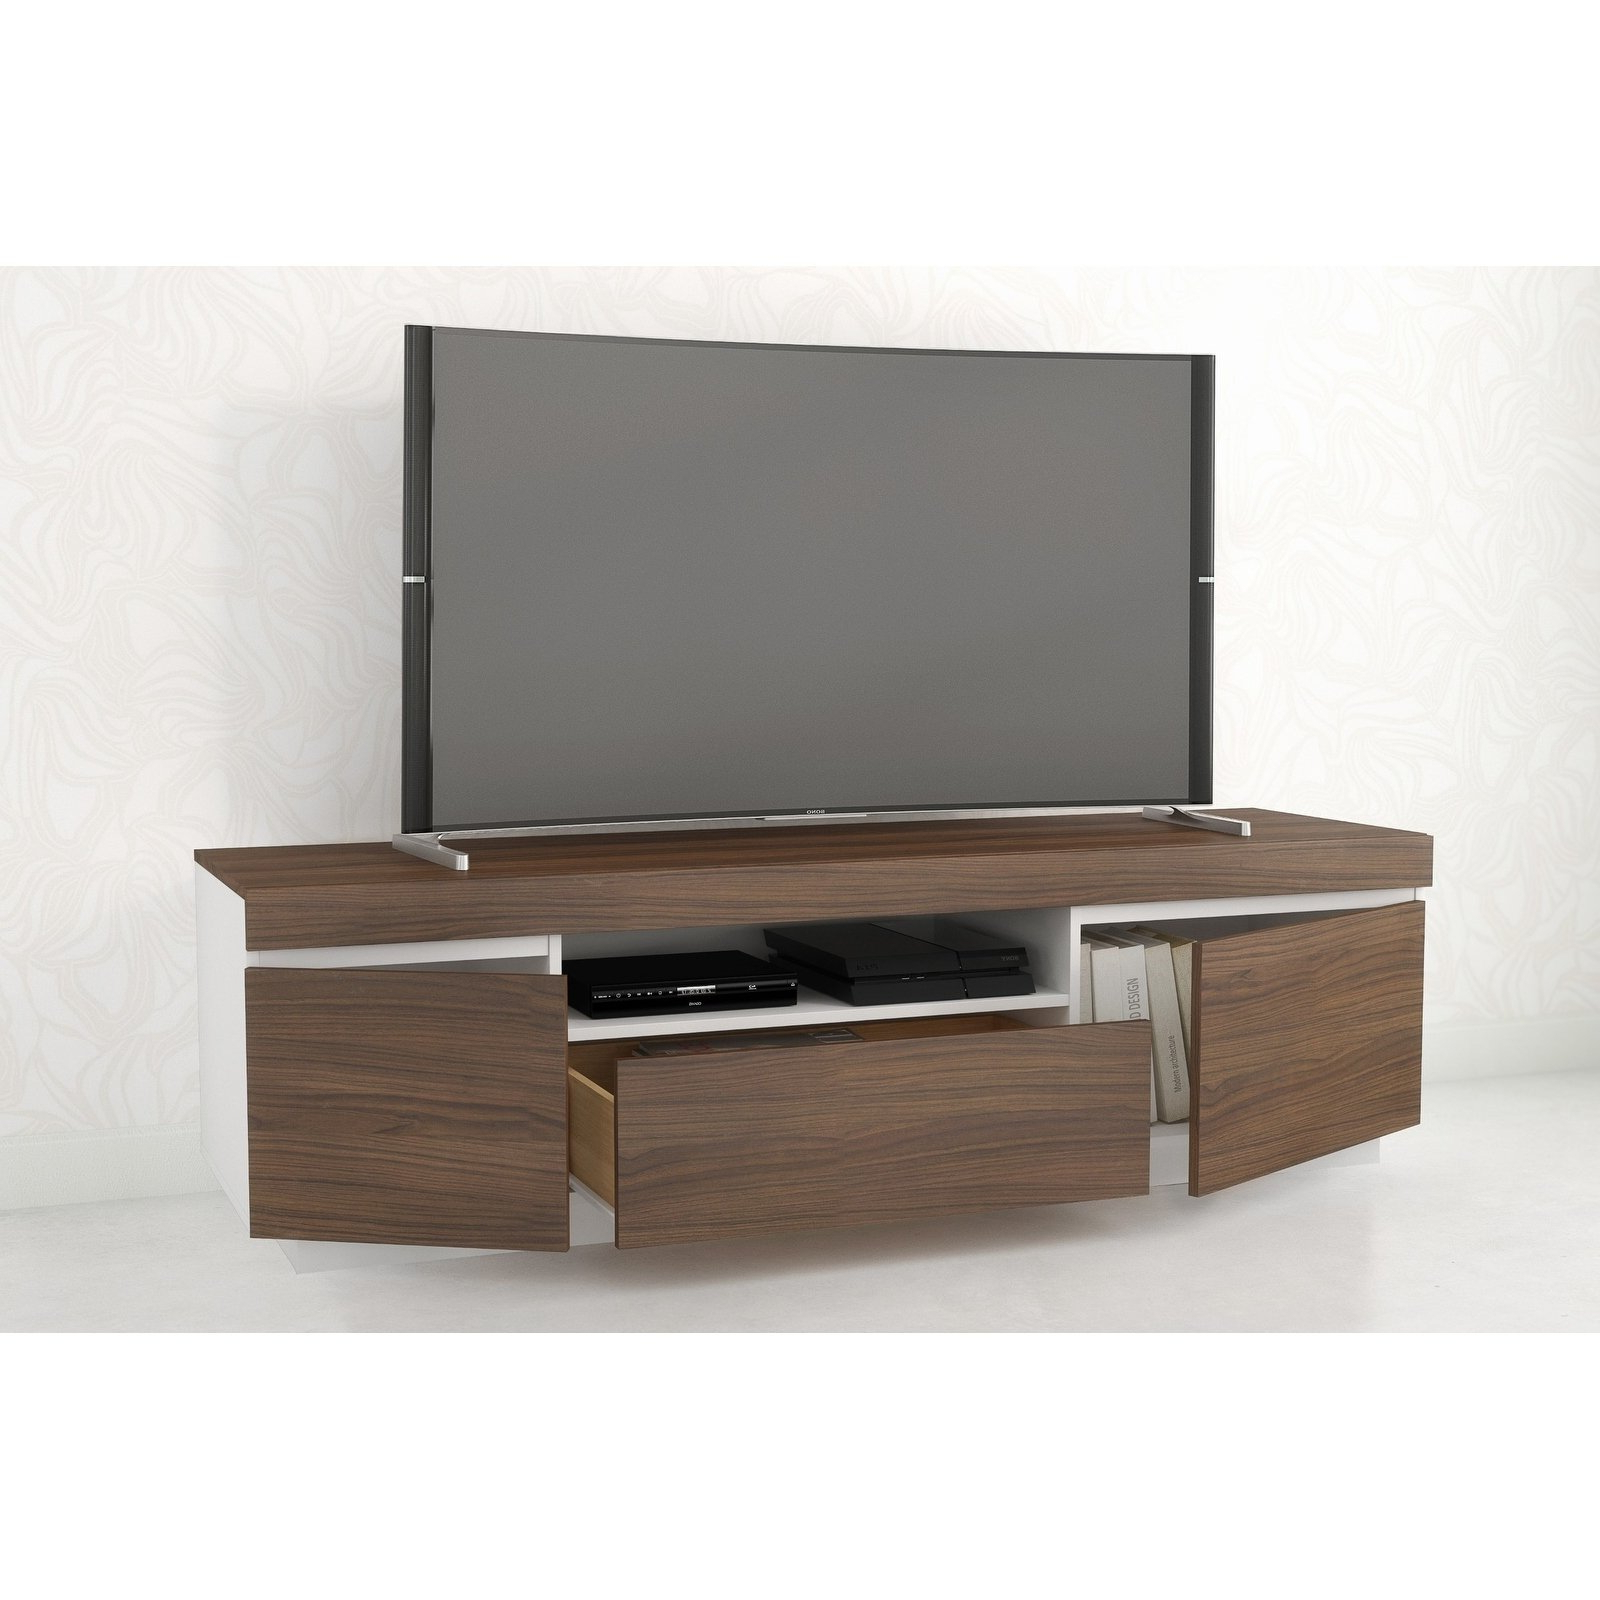 Nexera Tv Stands With Regard To Most Up To Date Shop Nexera Cali Tv Stand, Walnut And White – Free Shipping Today (View 15 of 20)